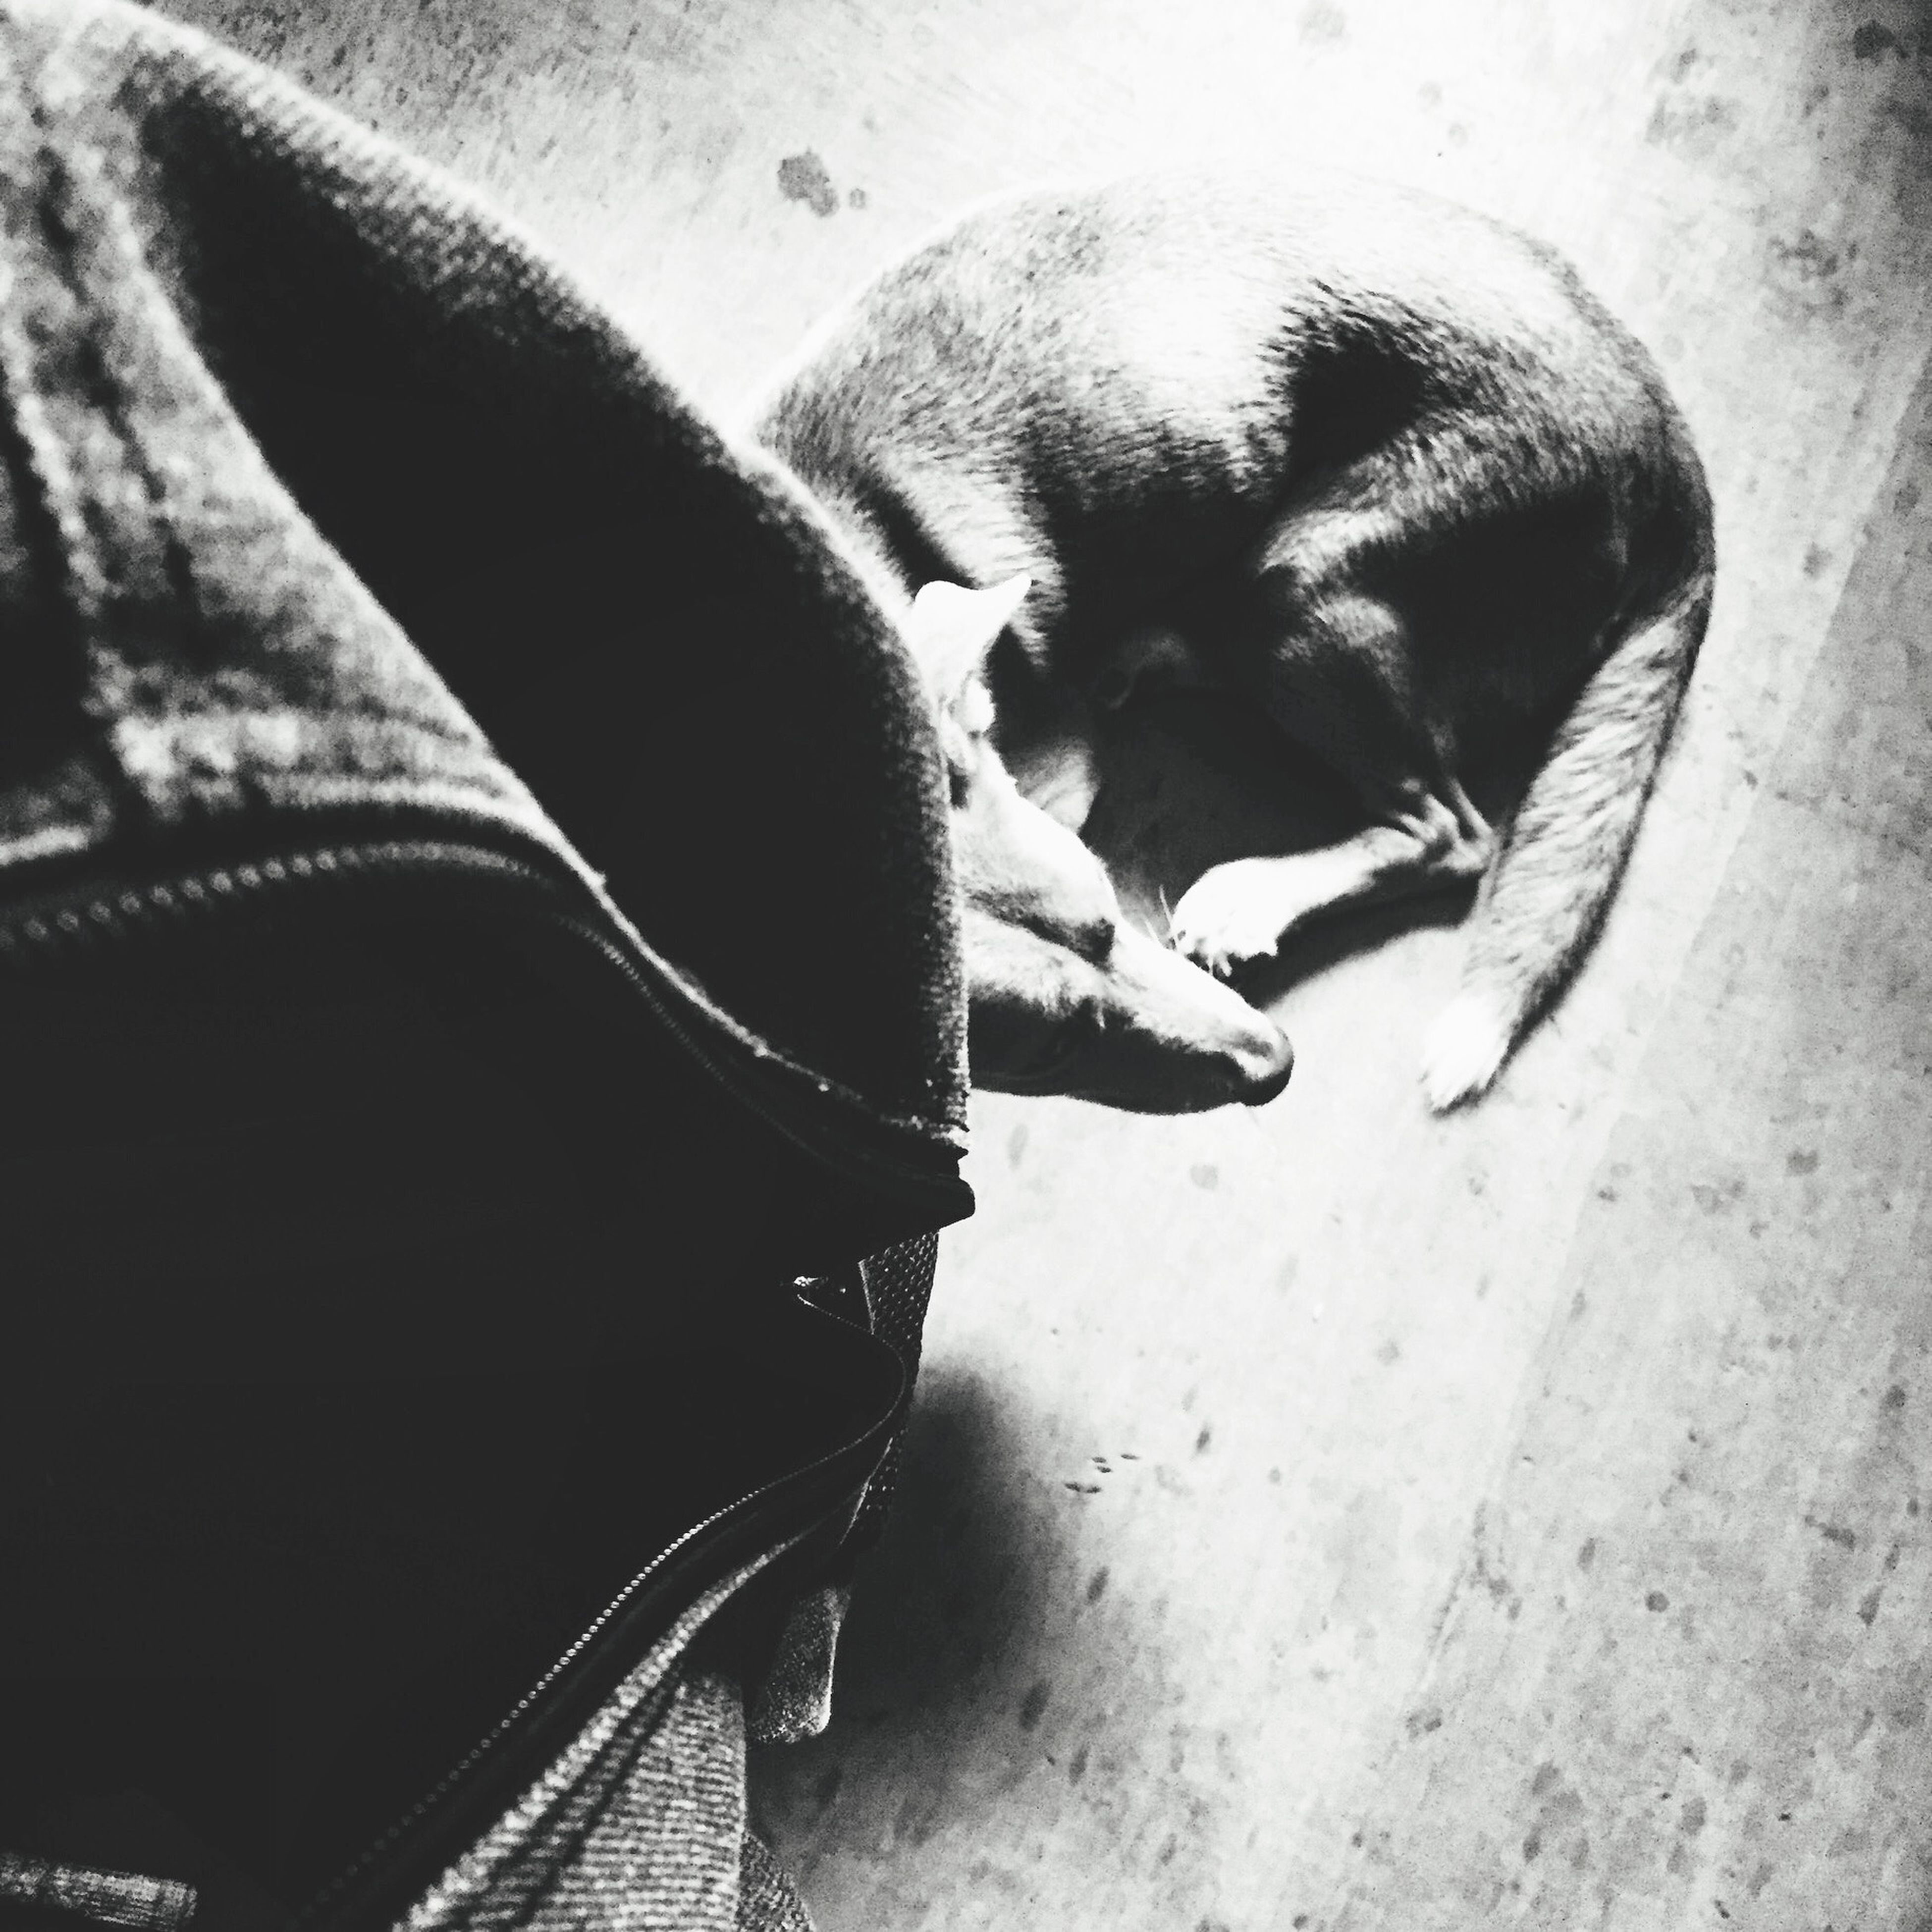 indoors, animal themes, one animal, shoe, high angle view, close-up, low section, domestic animals, person, pets, part of, footwear, mammal, unrecognizable person, day, relaxation, shadow